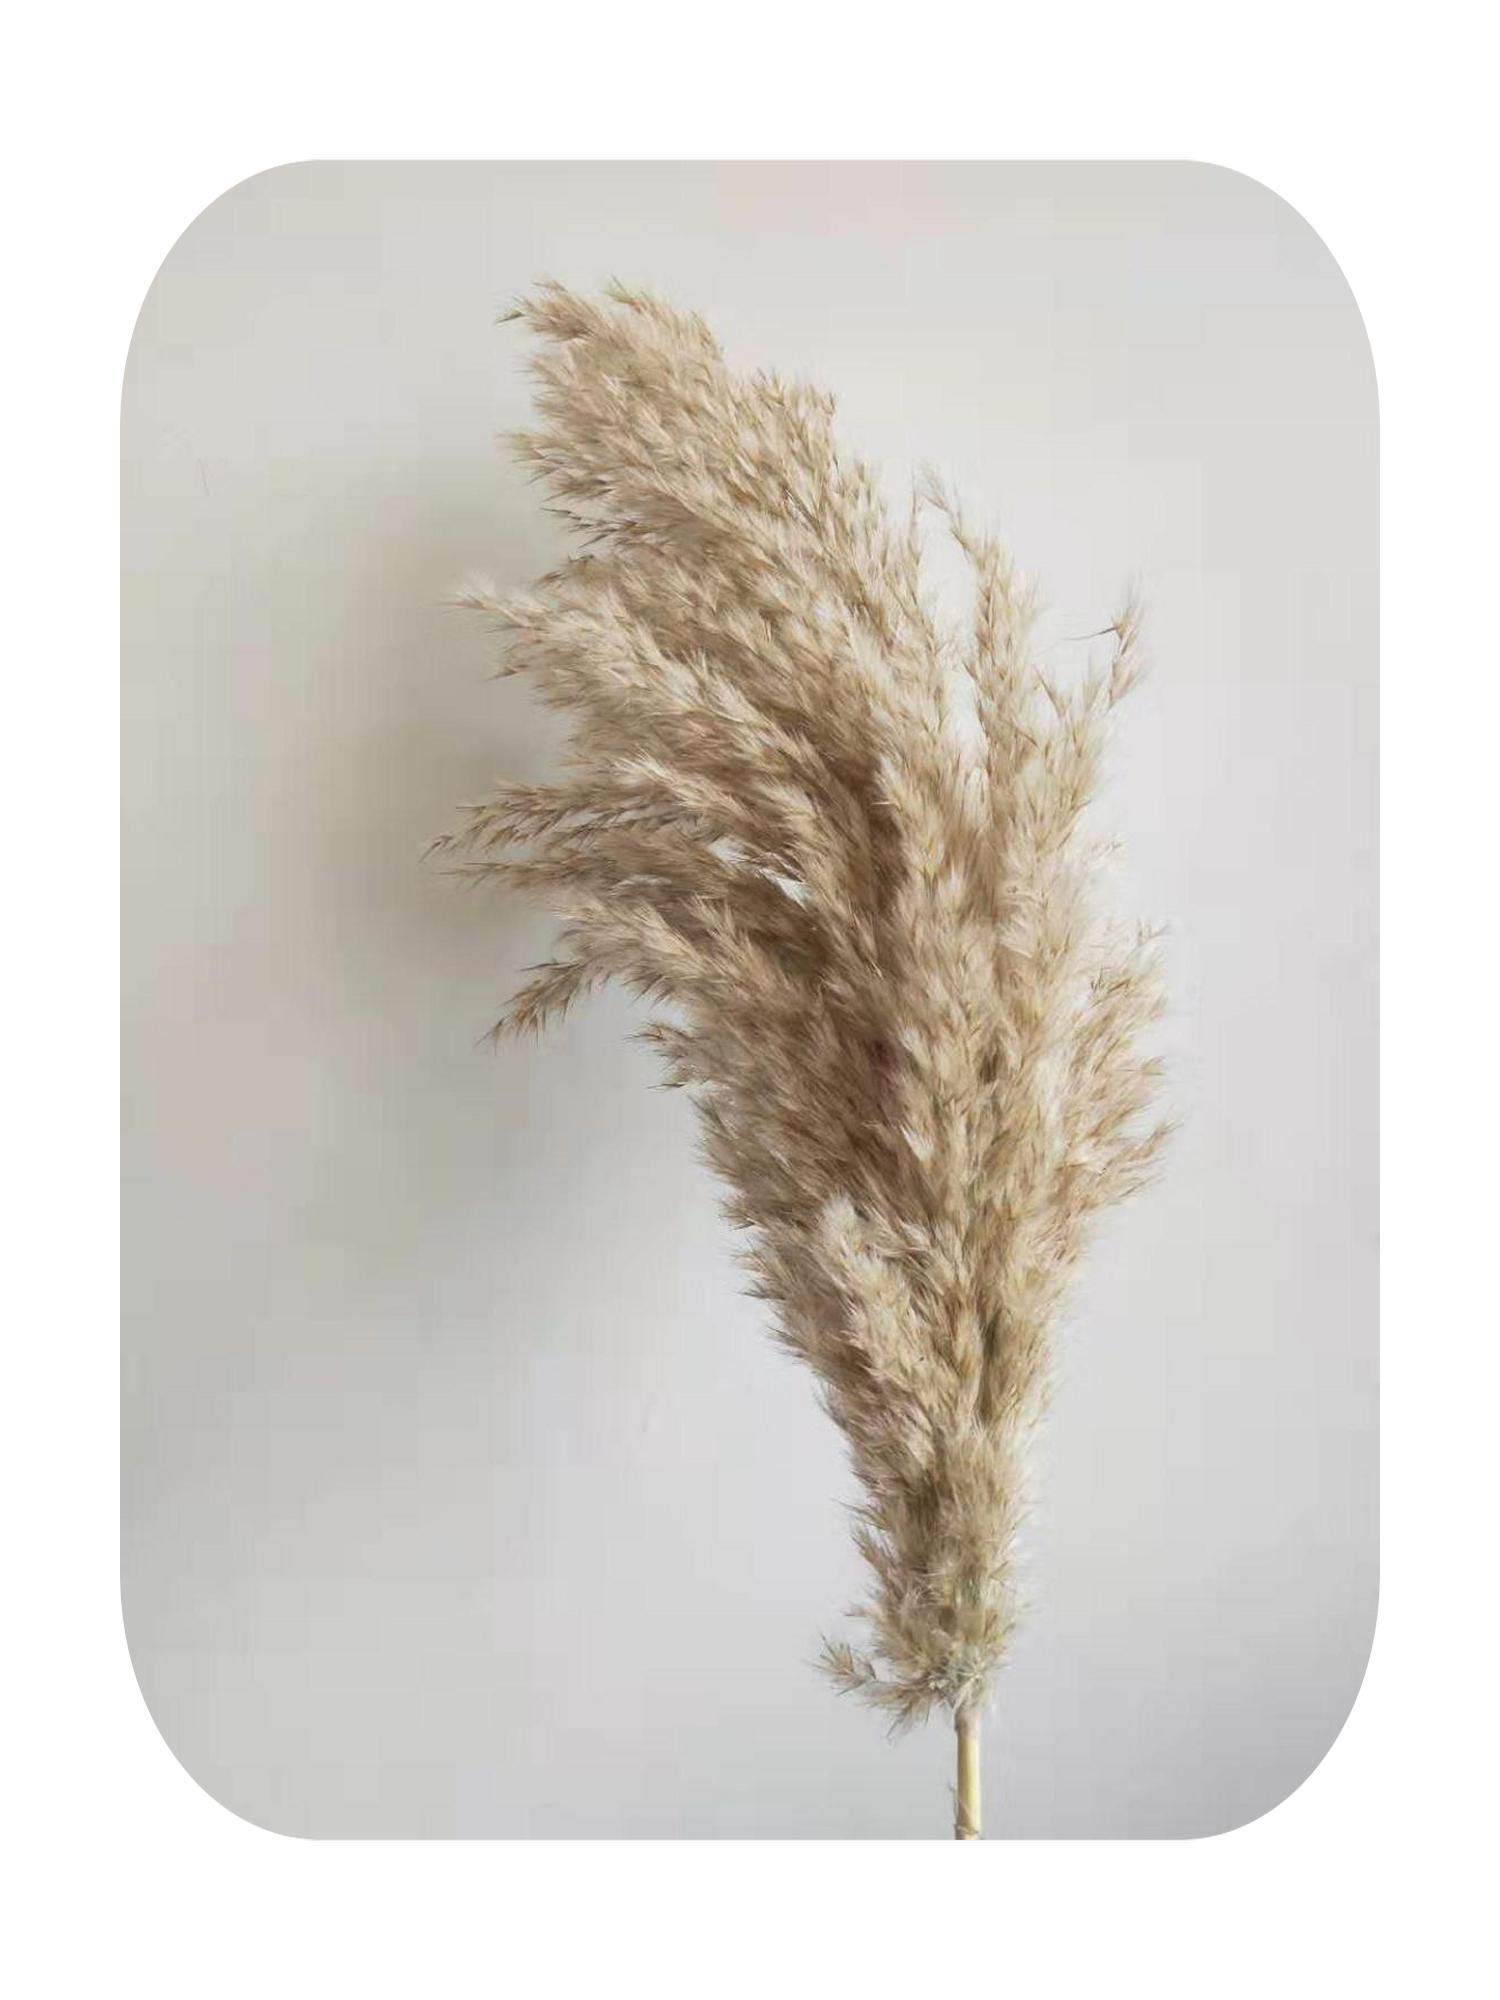 LAVOGUE 10Pcs Pampas Grass Bunch Large Dried Christmas Decorations for Home Wedding Flower Bunch Pampas Grass Natural Real Reed Plants -10Pcs Raw Color-L